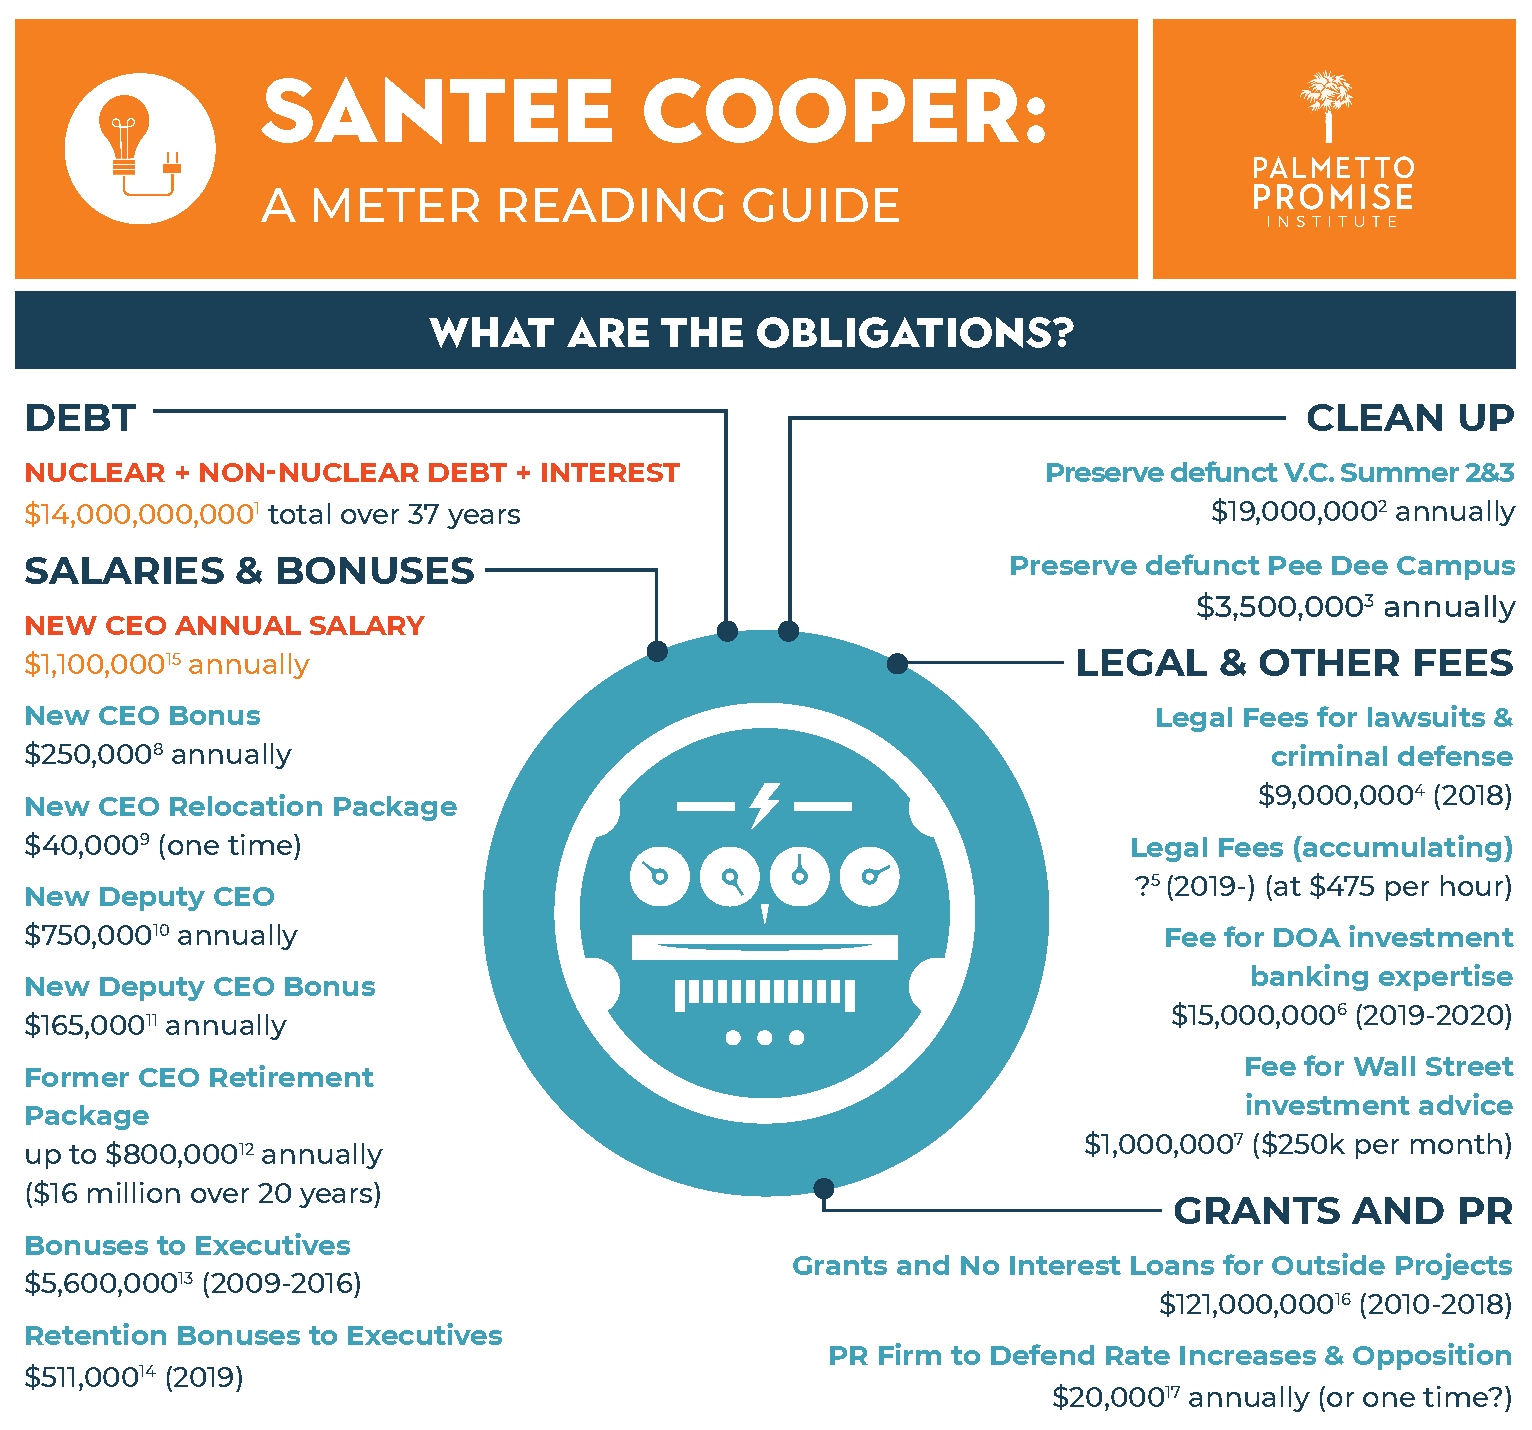 Santee Cooper: A meter reading guide